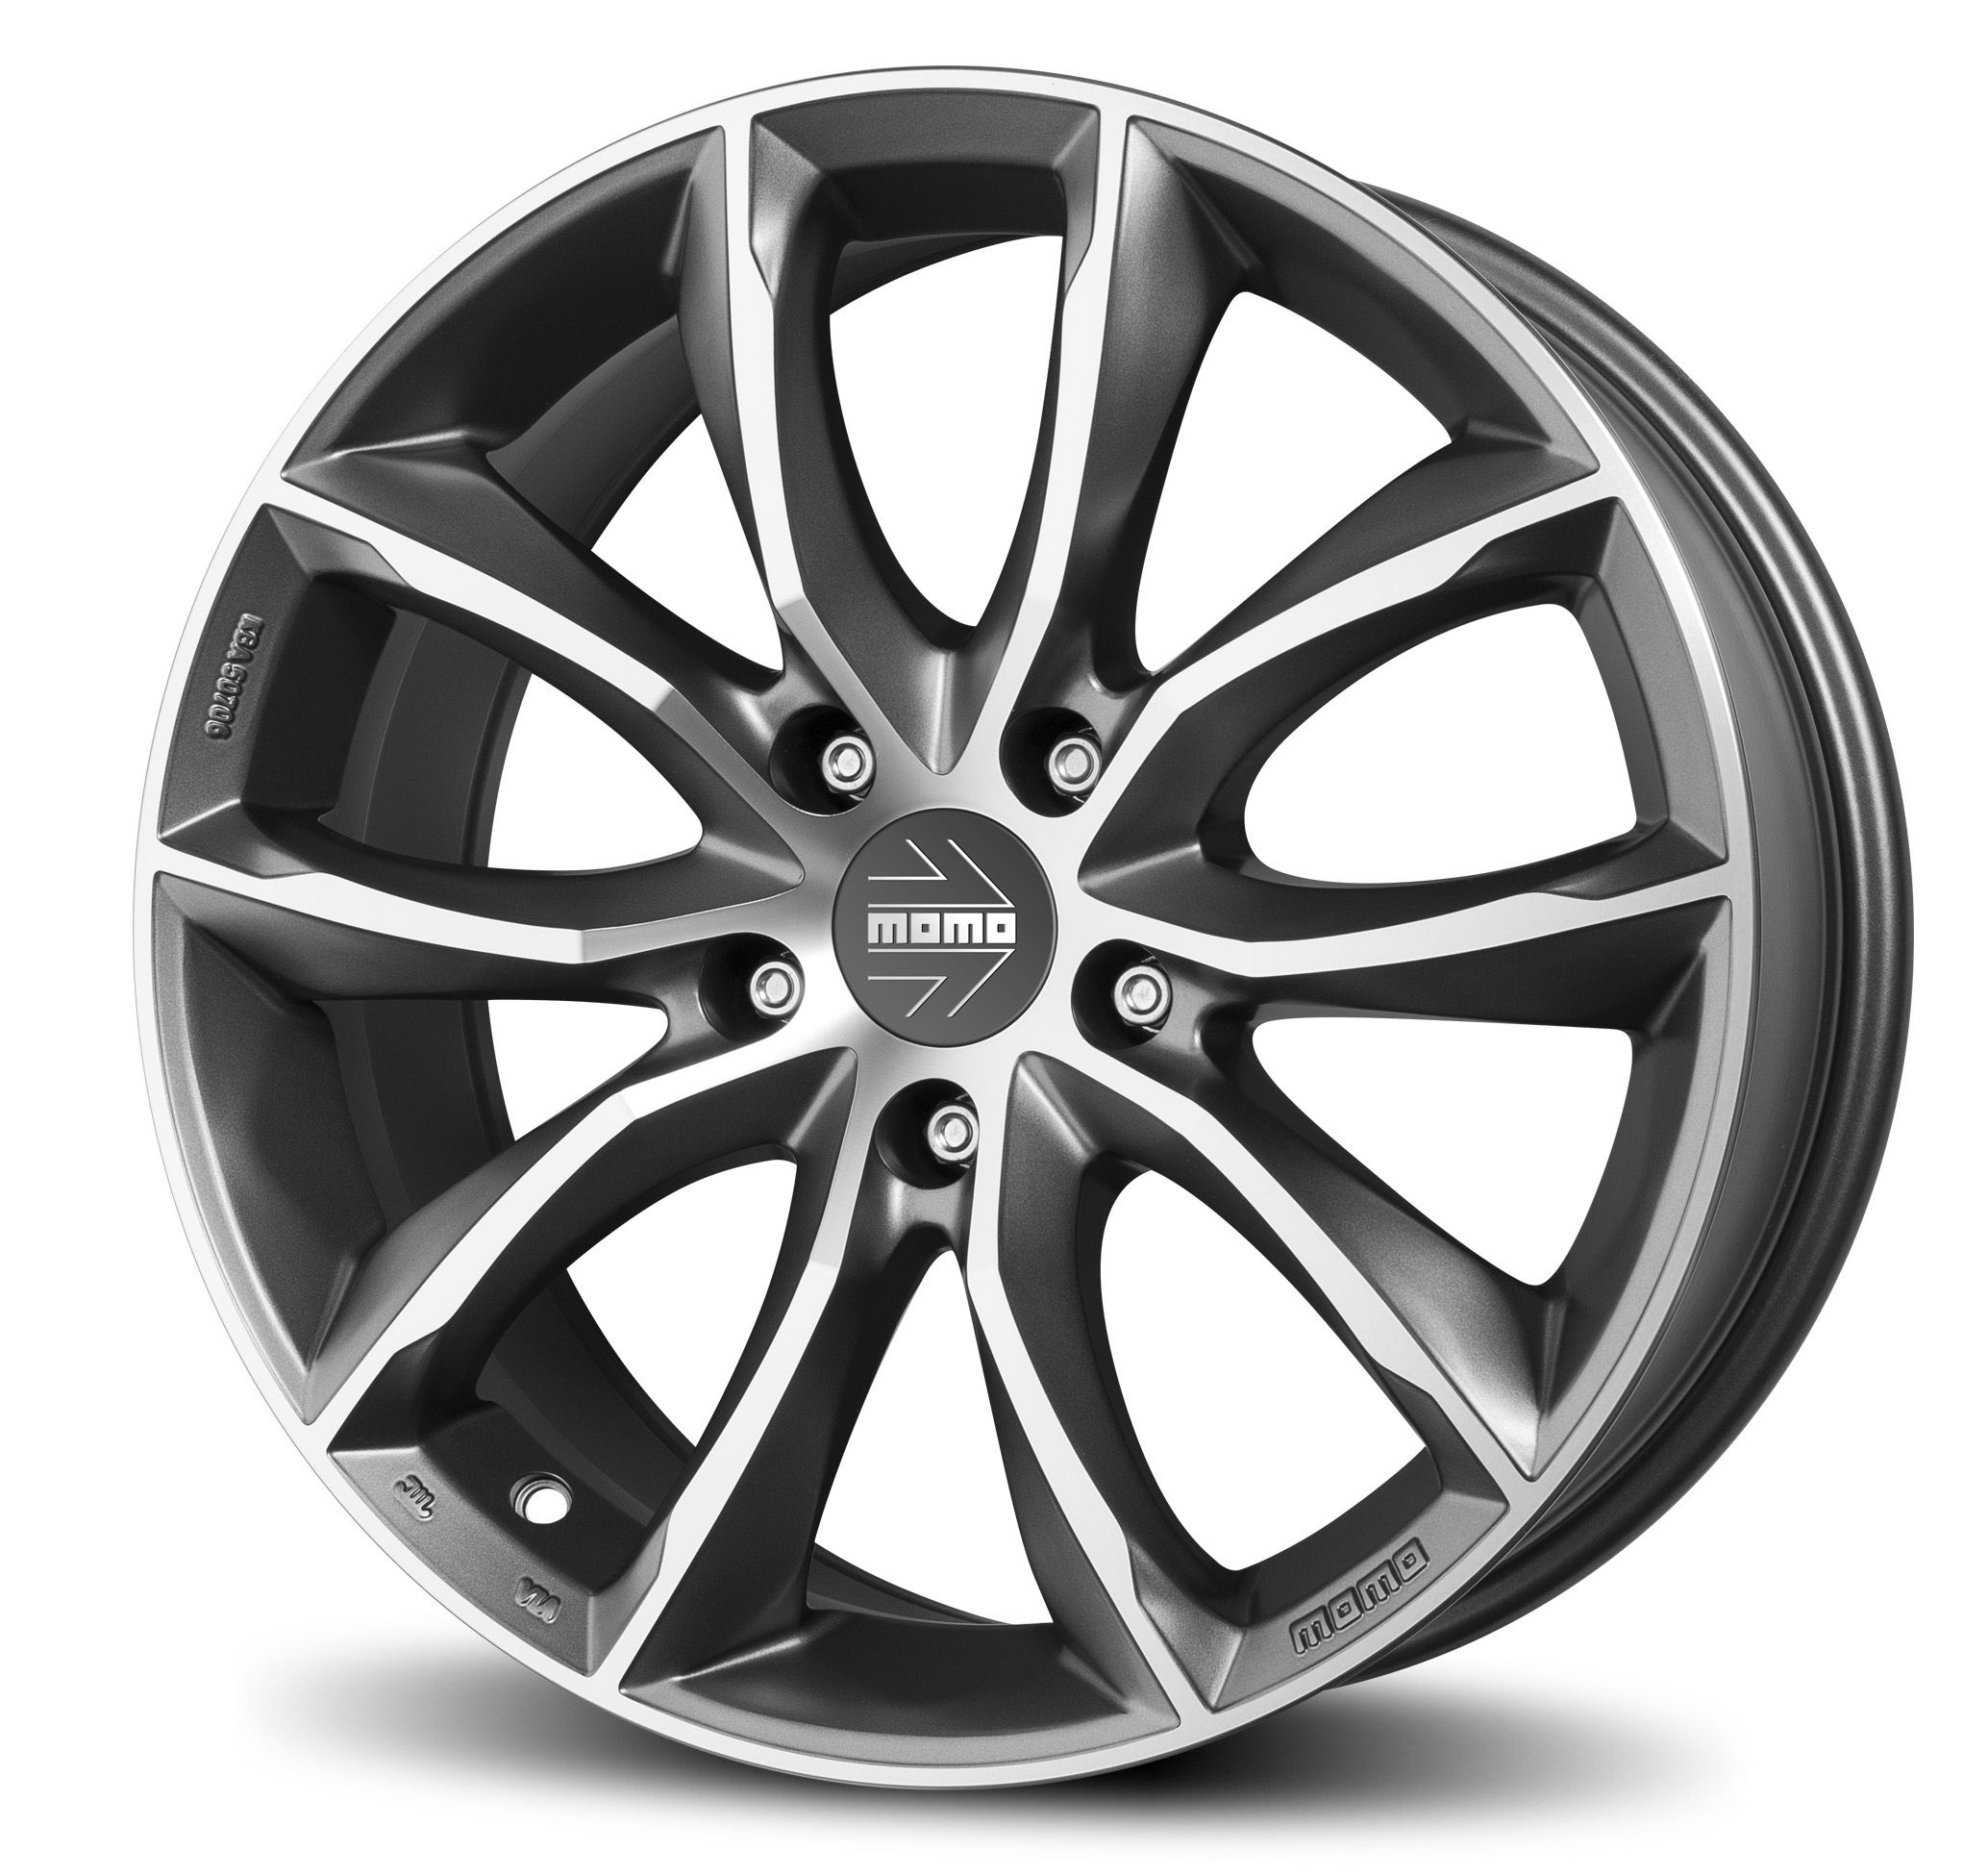 Llanta Momo Scream Jet Evo 8,0 X 17 Et48 5X114,3 72,3 Matt Anthracite D. Cut Via